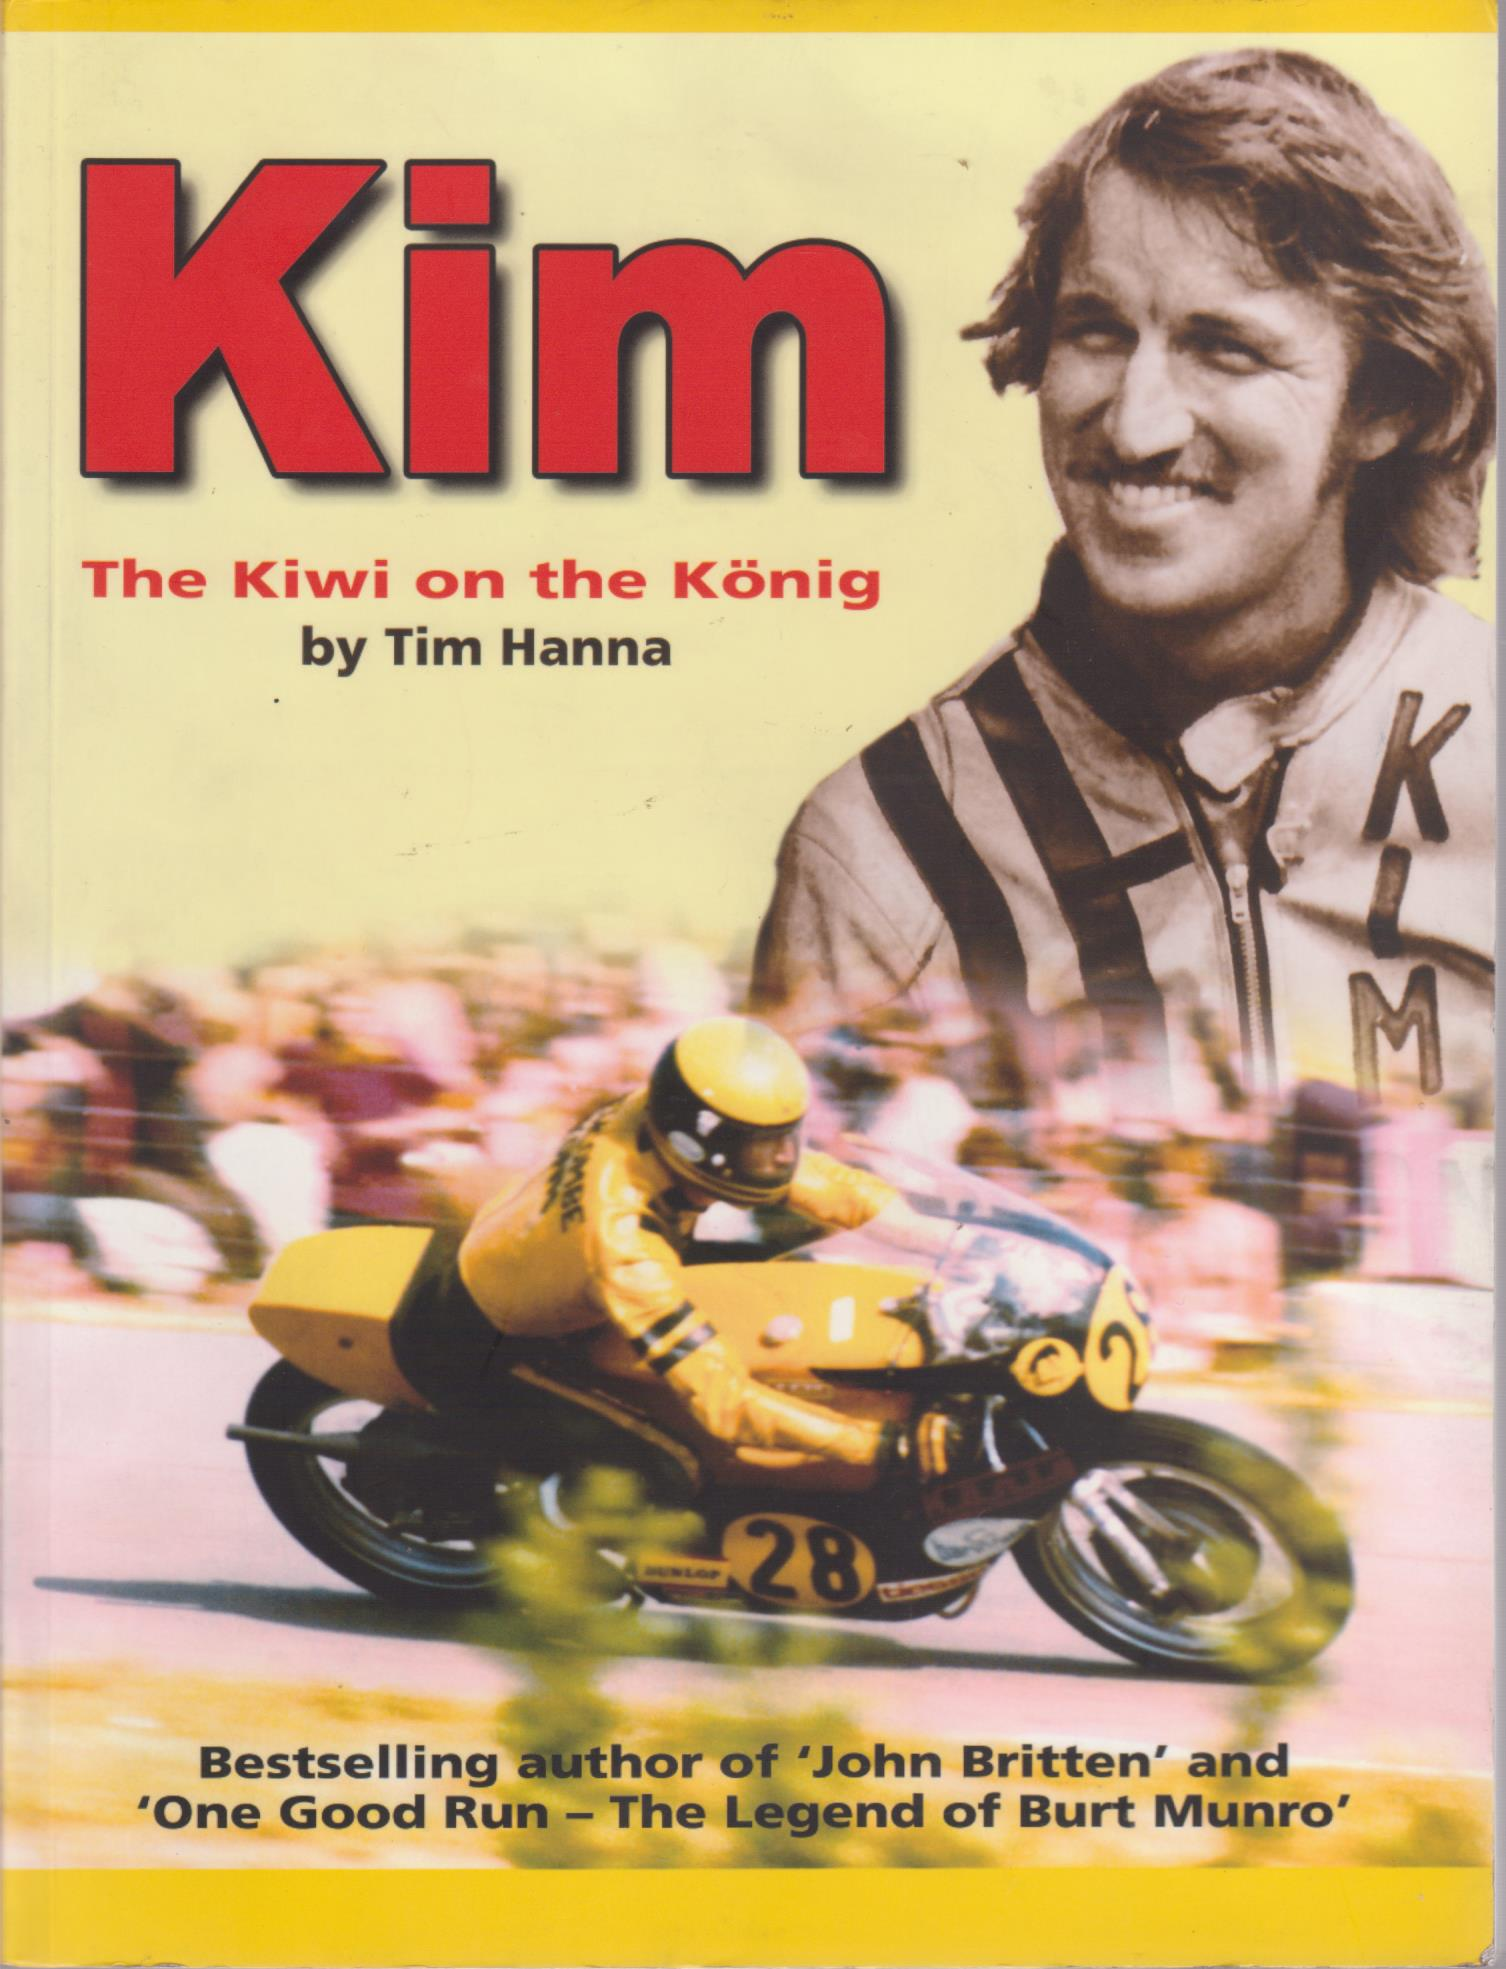 Kim, The Kiwi on the Konig, for sale in New Zealand